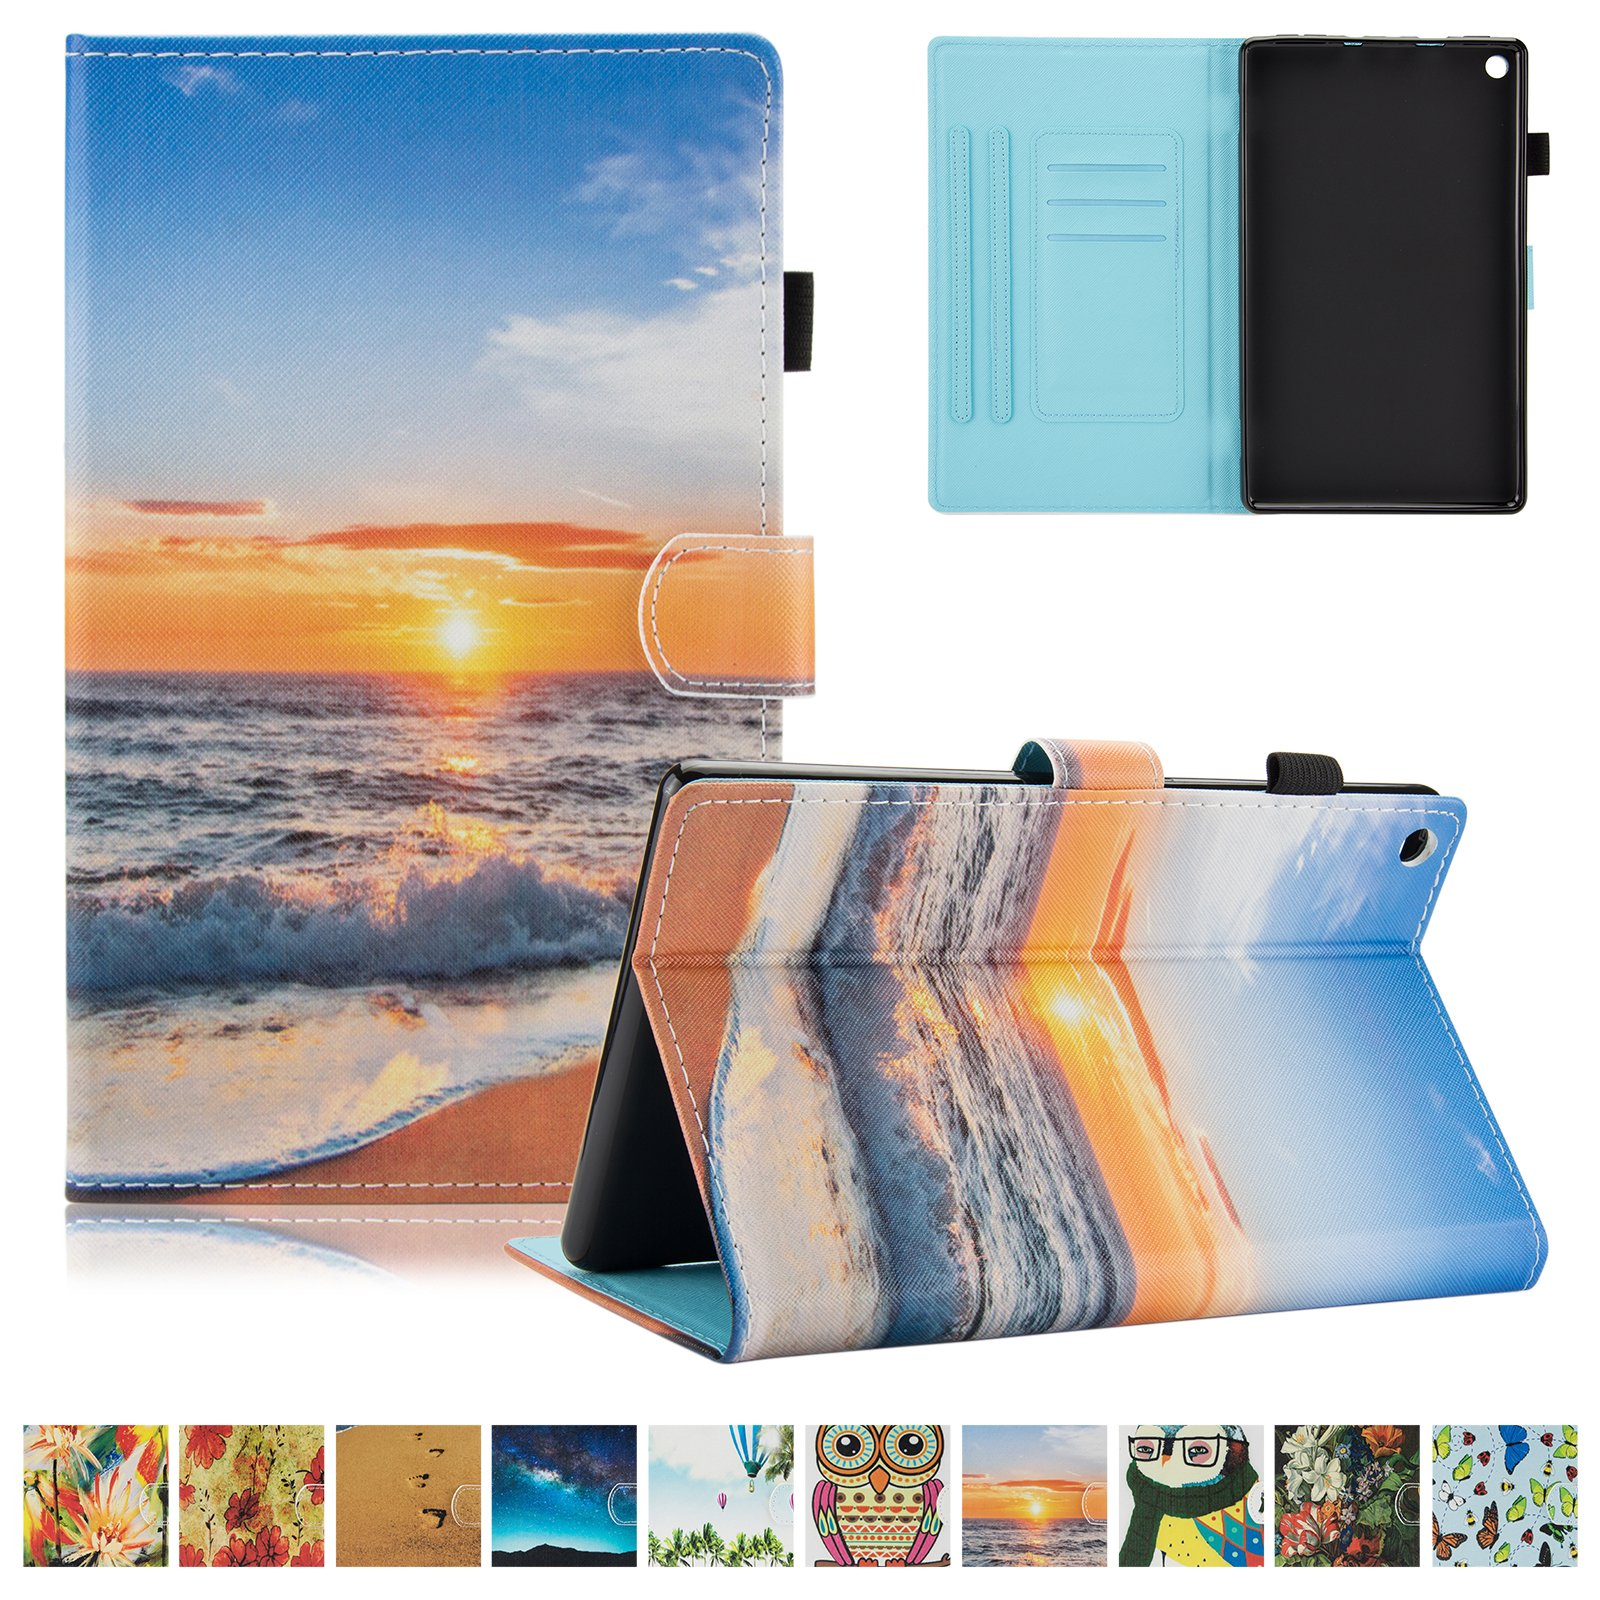 UUcovers Kindle Fire HD 8 Case,Slim Folio Stand Case with Auto Wake/Sleep&[Pen Slot] Smart Cover for Amazon Kindle Fire HD 8 7th Gen 2017 Release & 6th Gen Release 2016 with Free Stylus,Sunrise by UUcovers